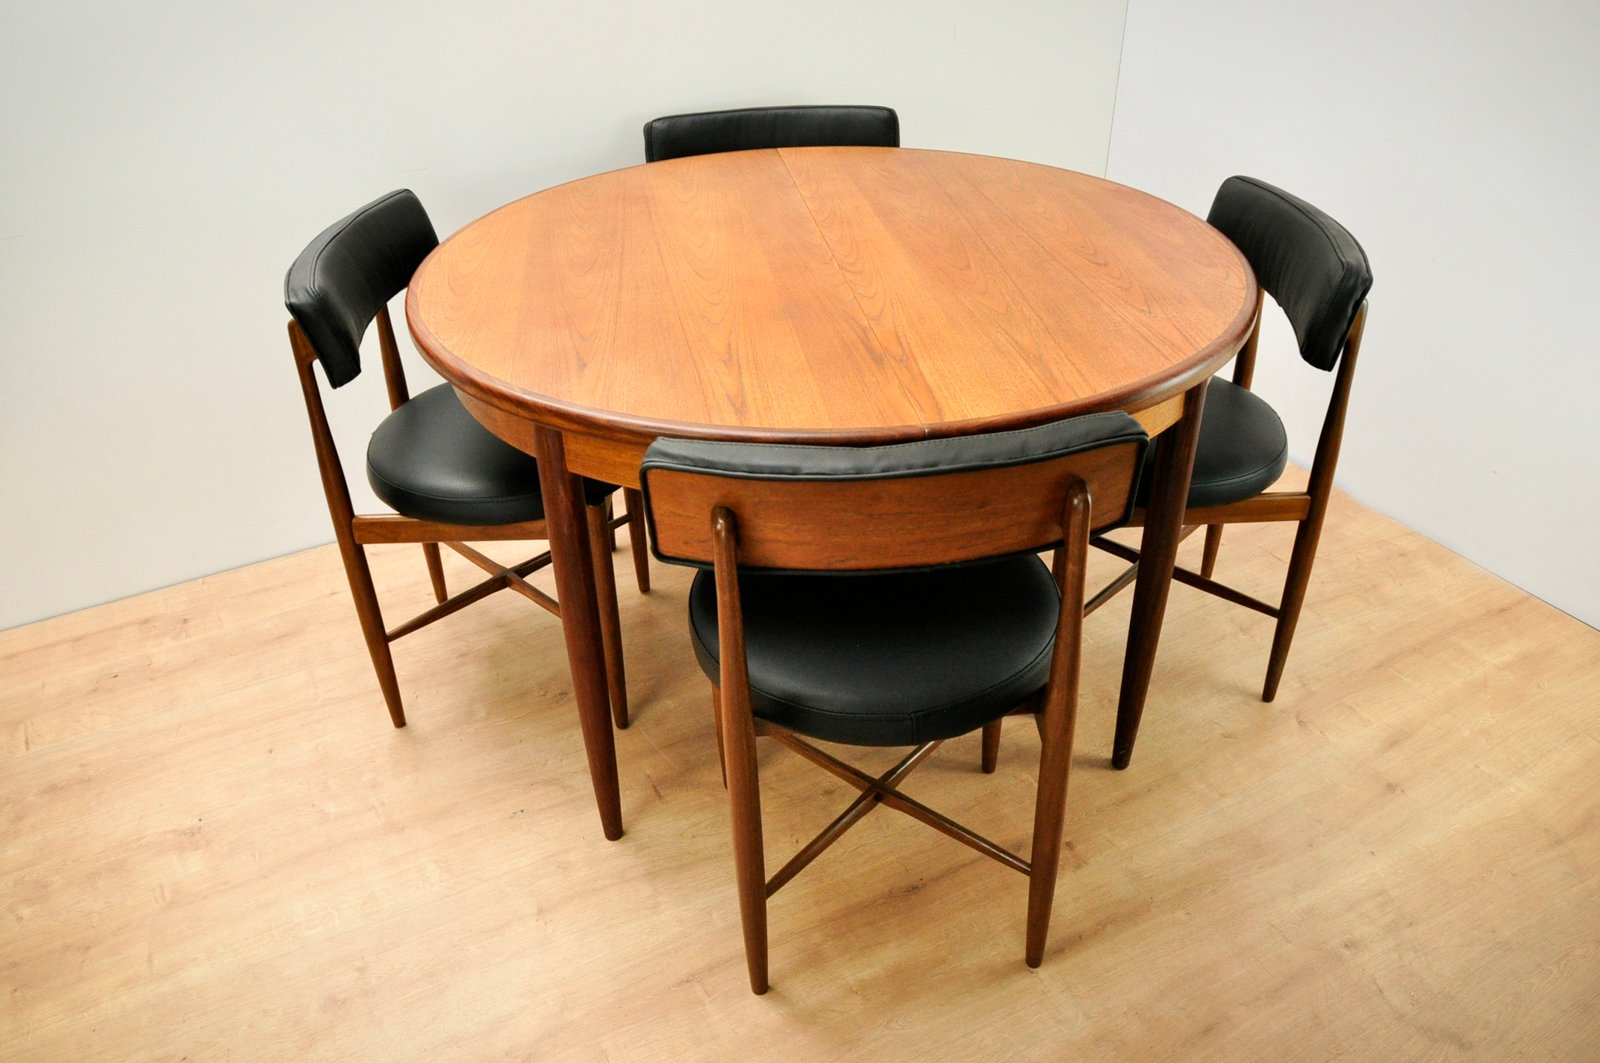 Dining Table And 4 Chairs By Ib Kofod Larsen For G Plan